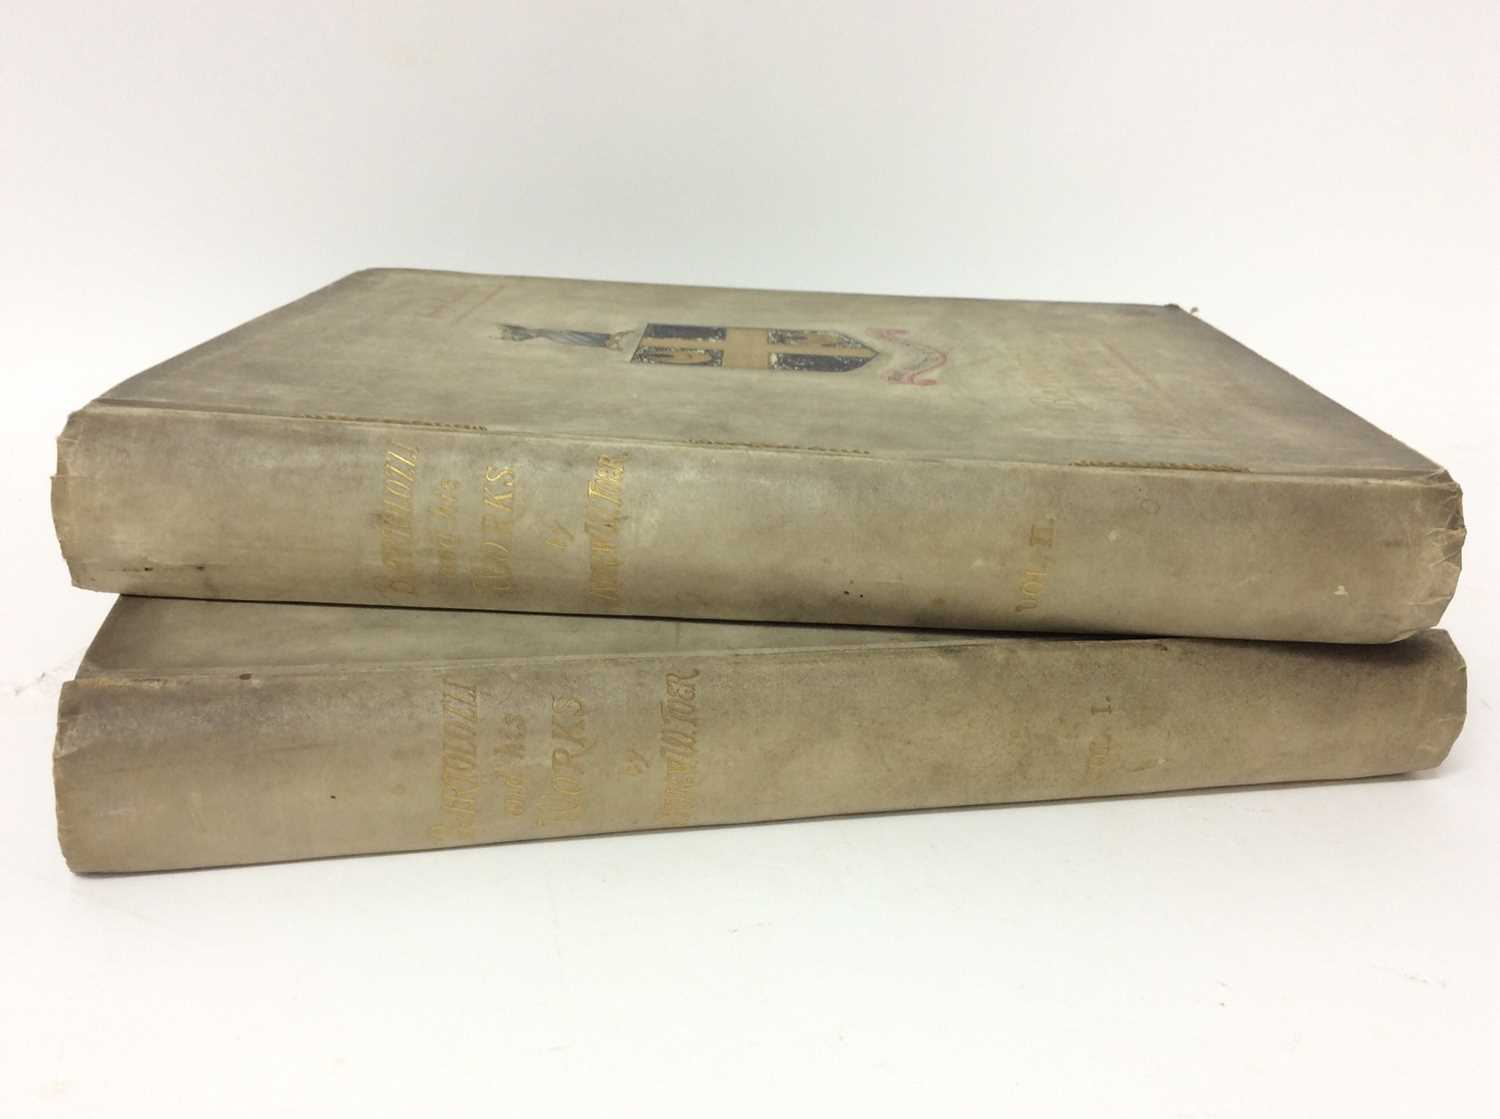 Andrew W. Tuer : Bartolozzi and his works, a biographical and descriptive account, in two volumes - Image 2 of 5